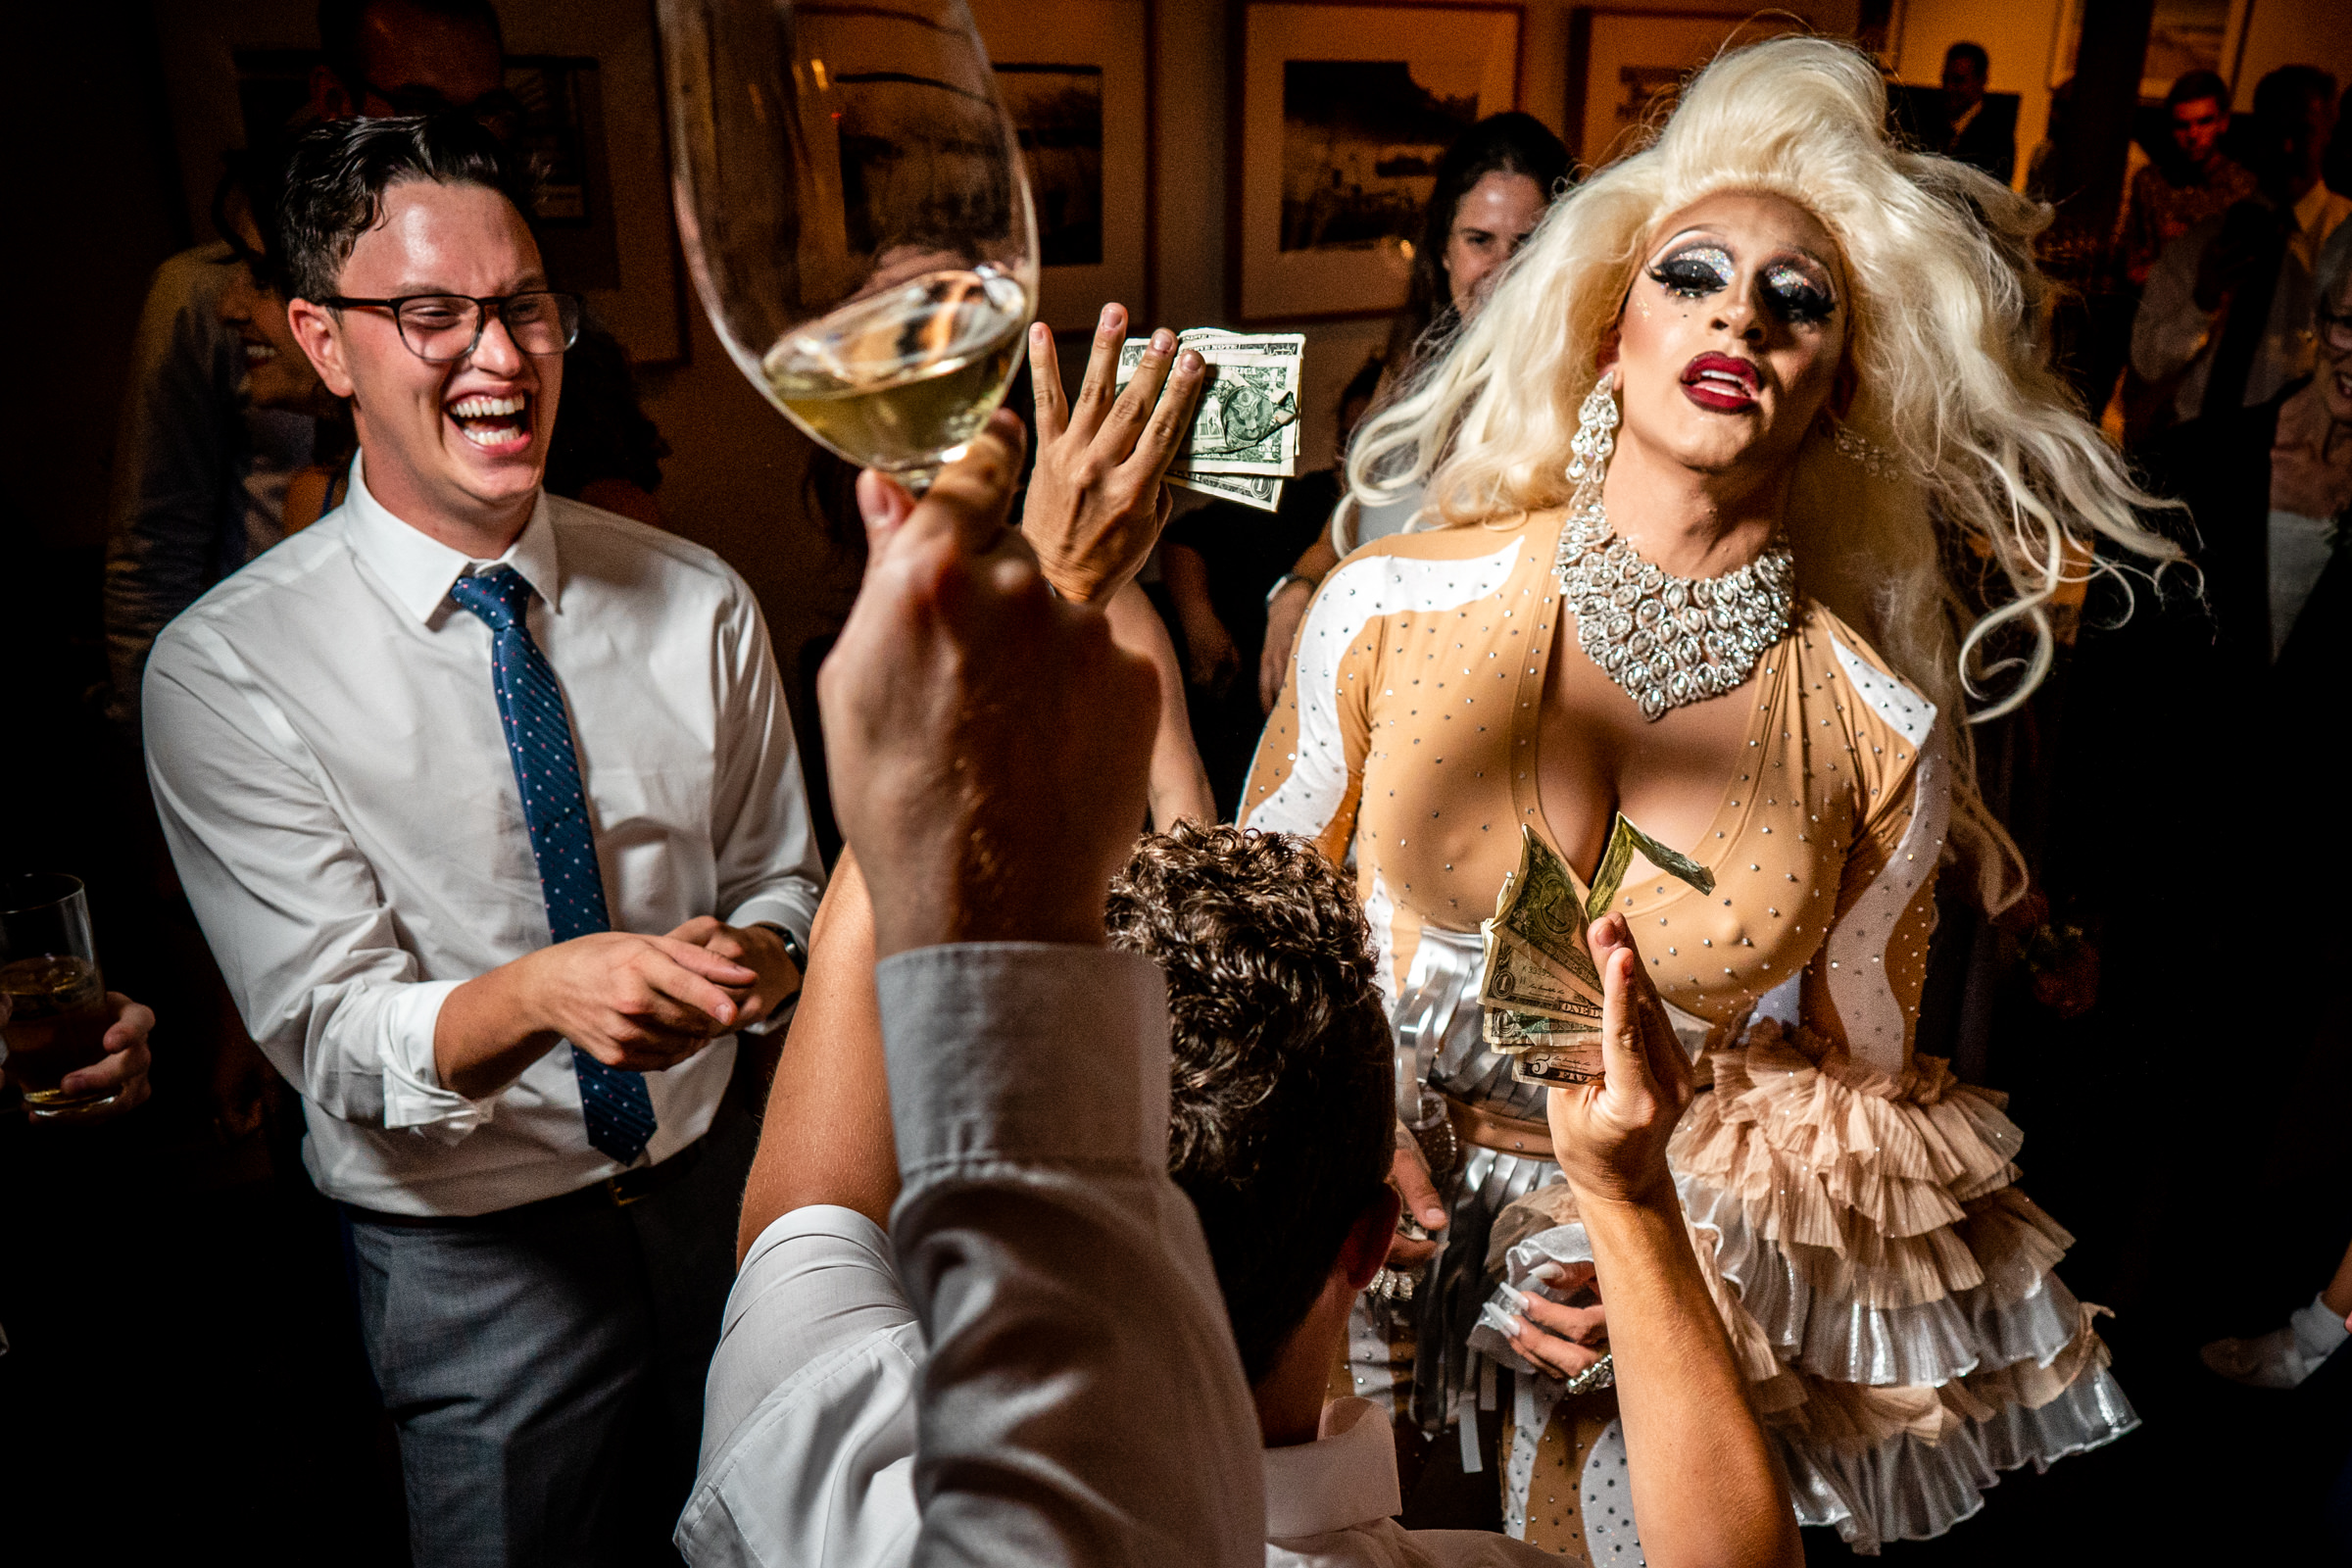 Drag queen at a wedding reception photo by Bee Two Sweet